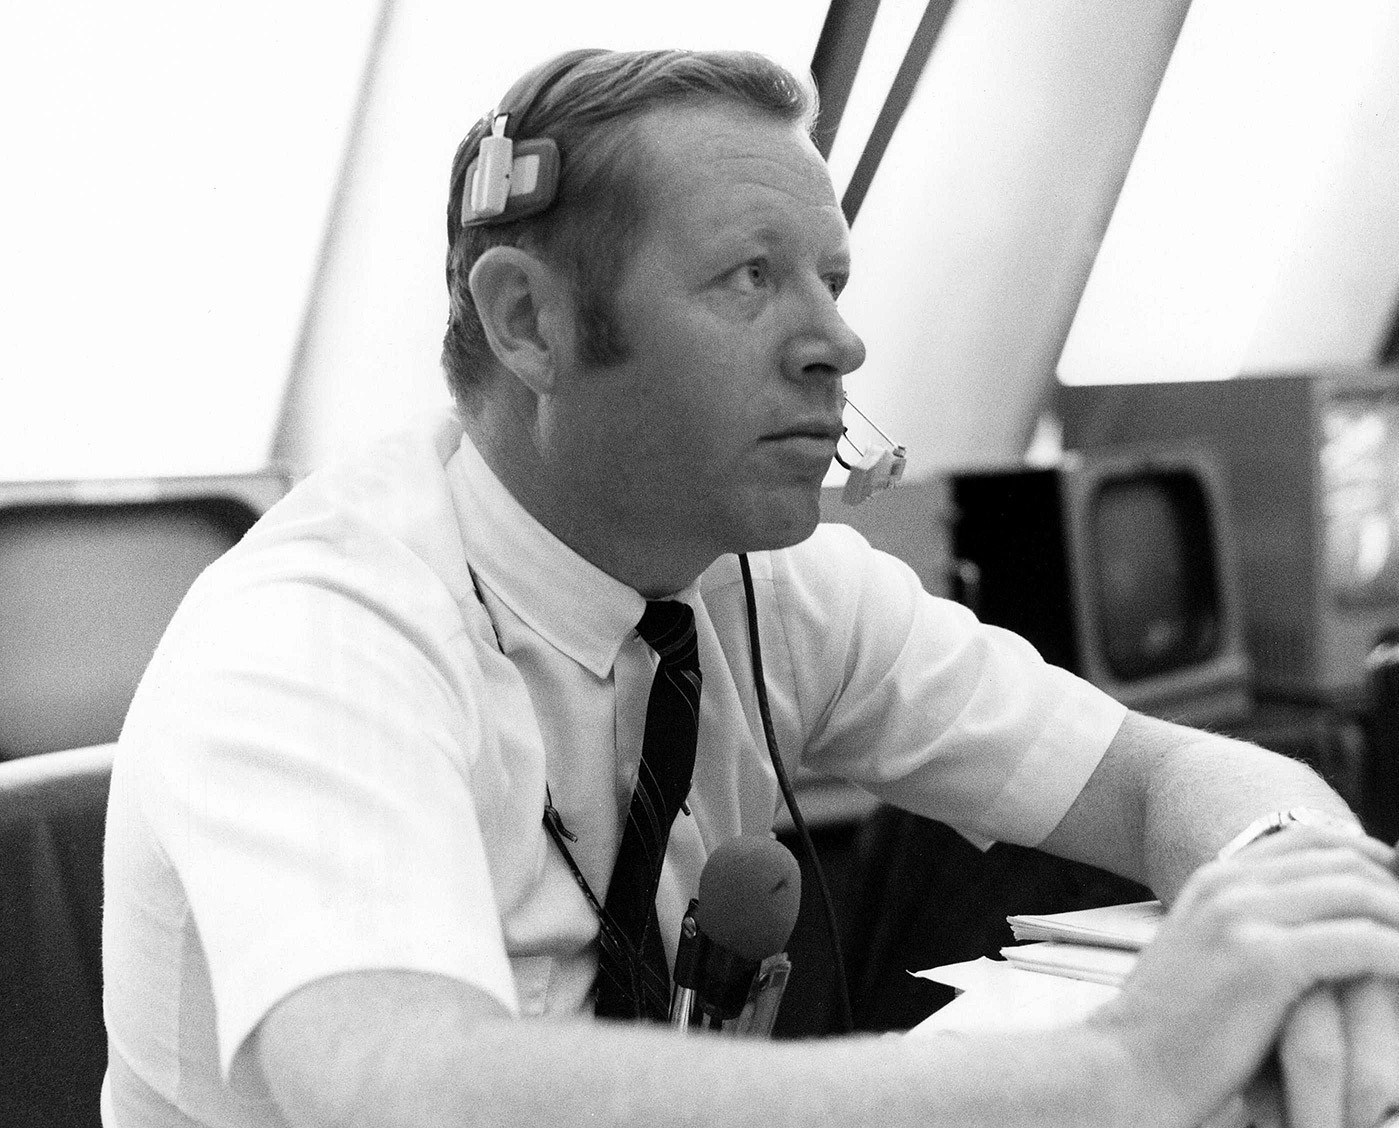 Jack King provided launch countdown commentary for every U.S. human spaceflight mission from Gemini 4 through Apollo 15, with one exception. He is seen here inside the firing room at the Kennedy Space Center's Launch Control Center during the countdown for Apollo 12. Credit: NASA